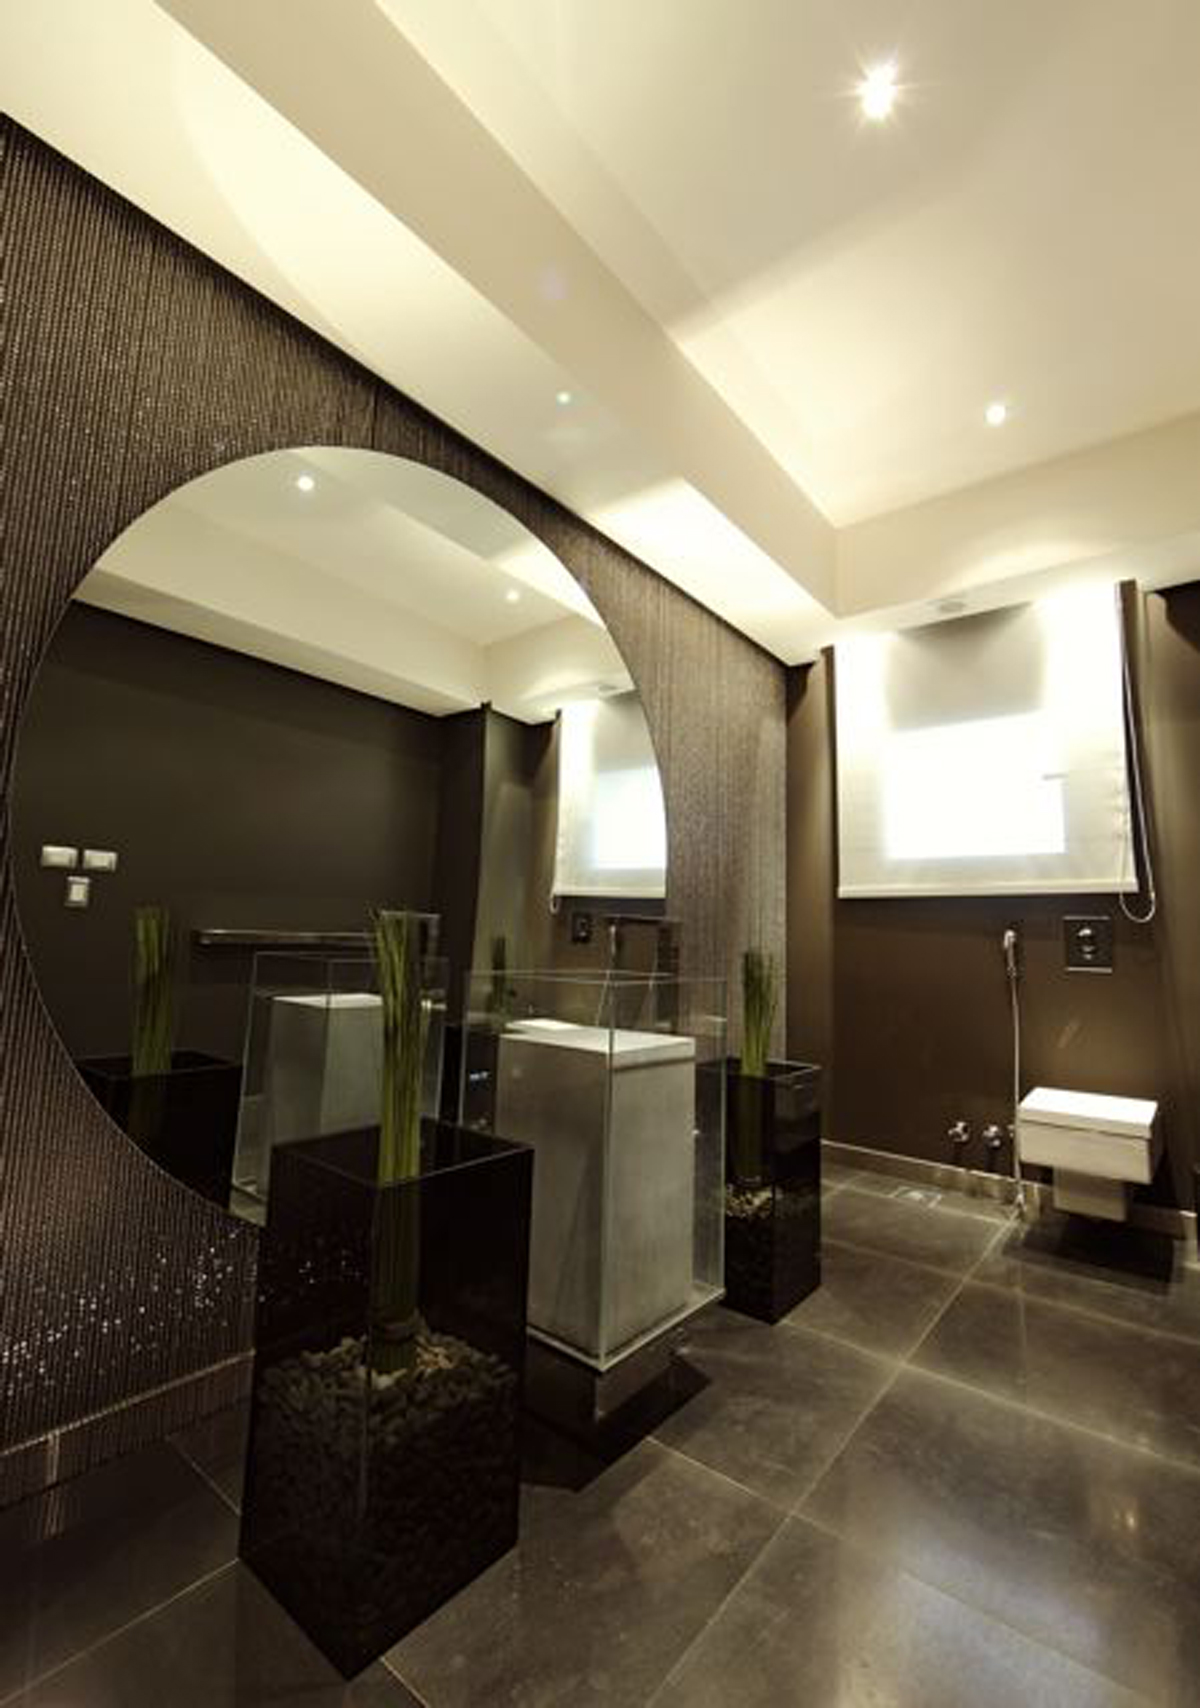 Minimalist Bathroom Interior Minimalist Dark Bathroom Interior